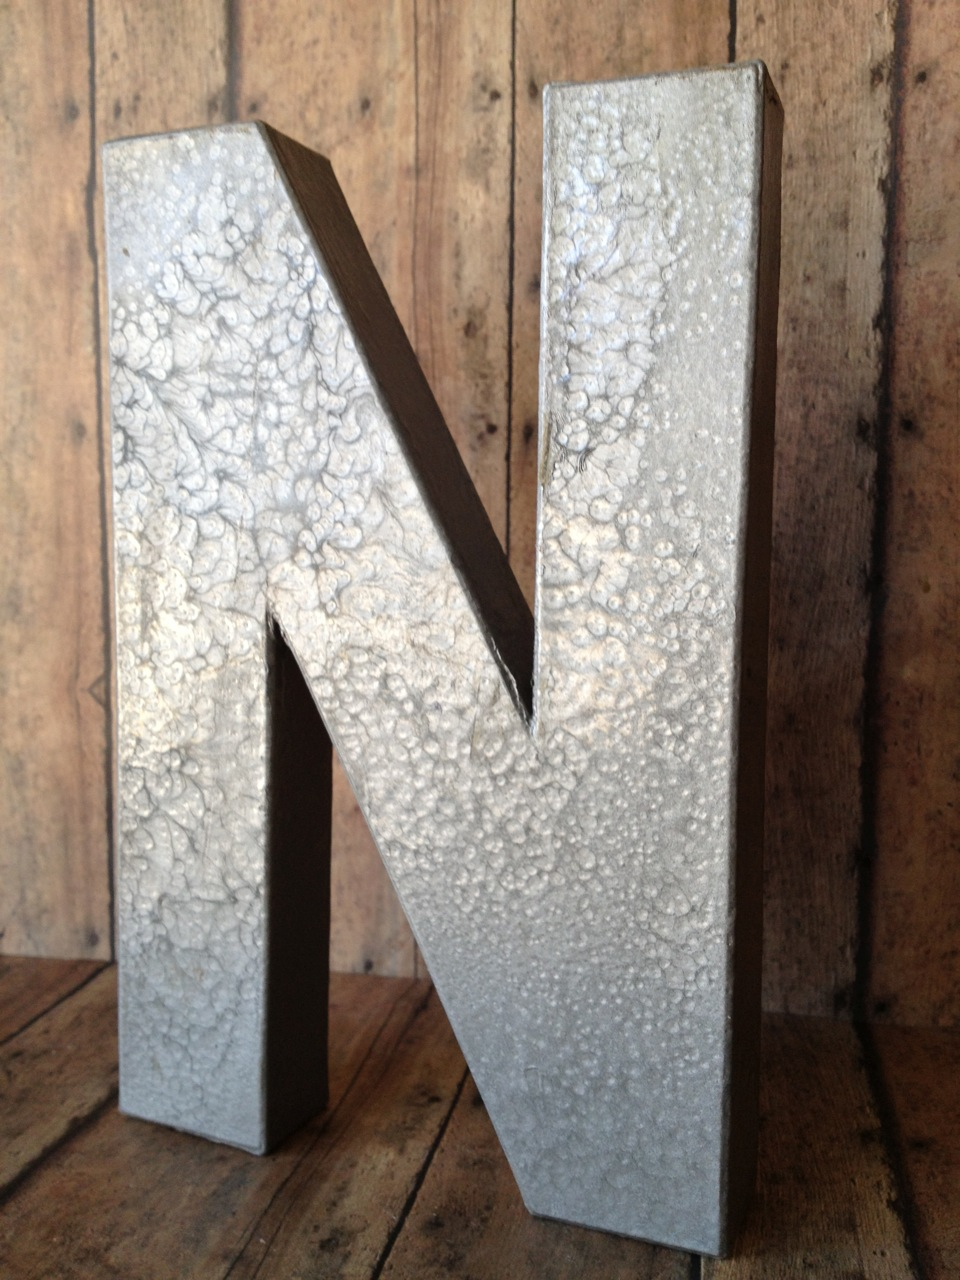 Large Flat Metal Letters $2 Diy Metal Letters  Her View From Home